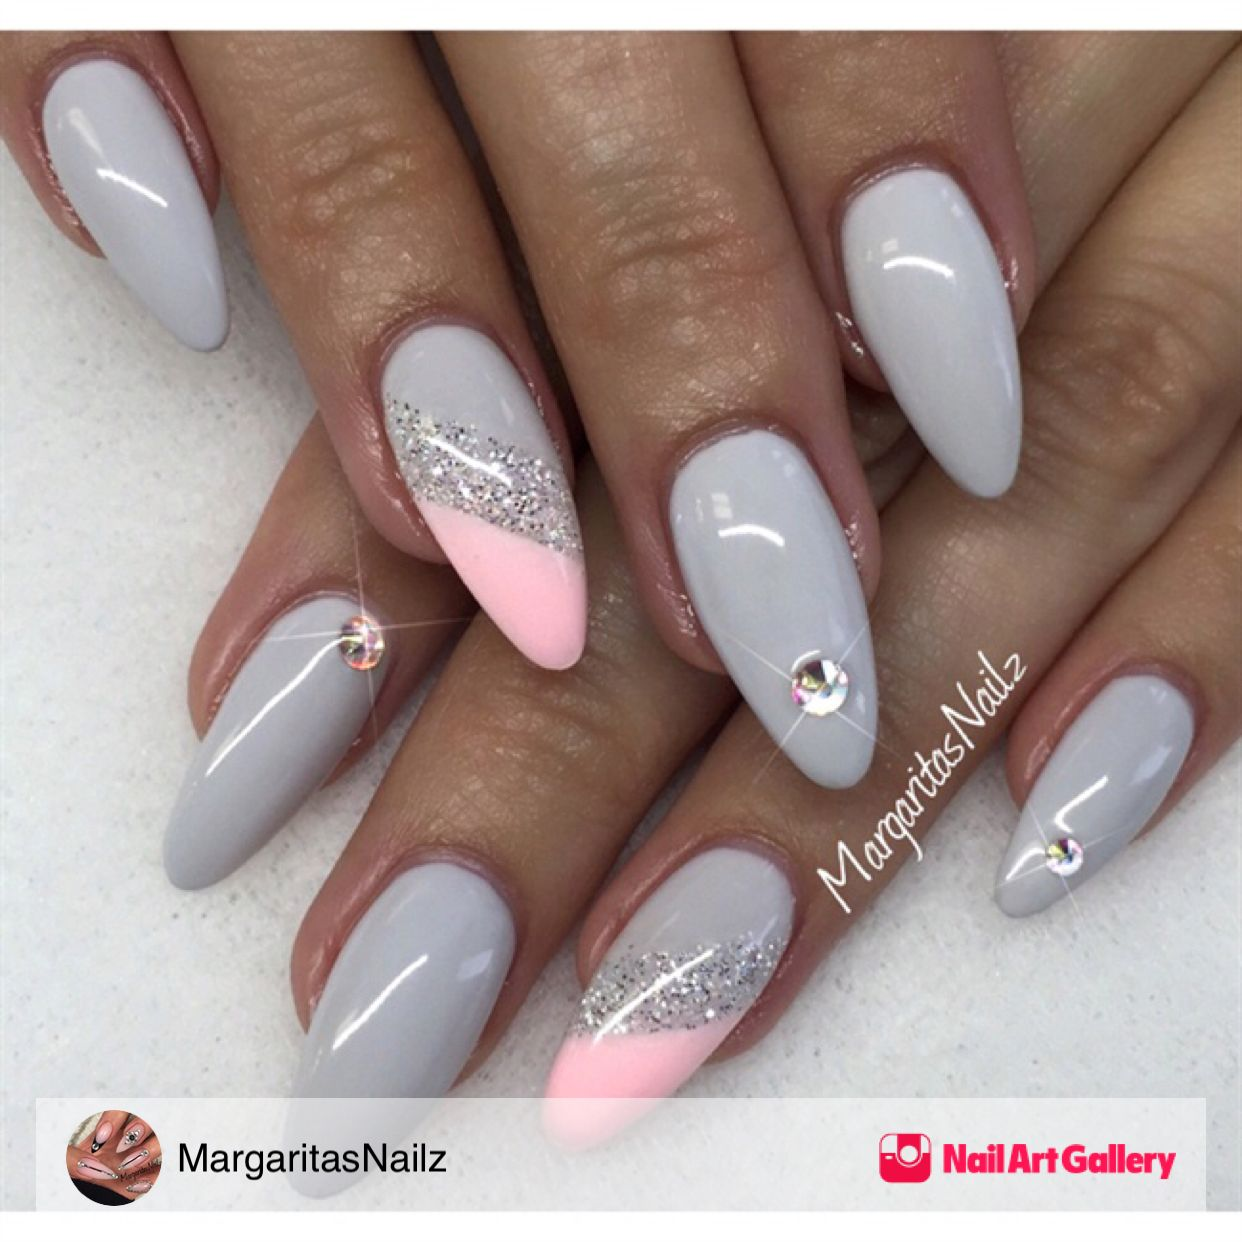 Grey nails by margaritasnailz via nail art gallery nailartgallery grey nails by margaritasnailz via nail art gallery nailartgallery nailart prinsesfo Images